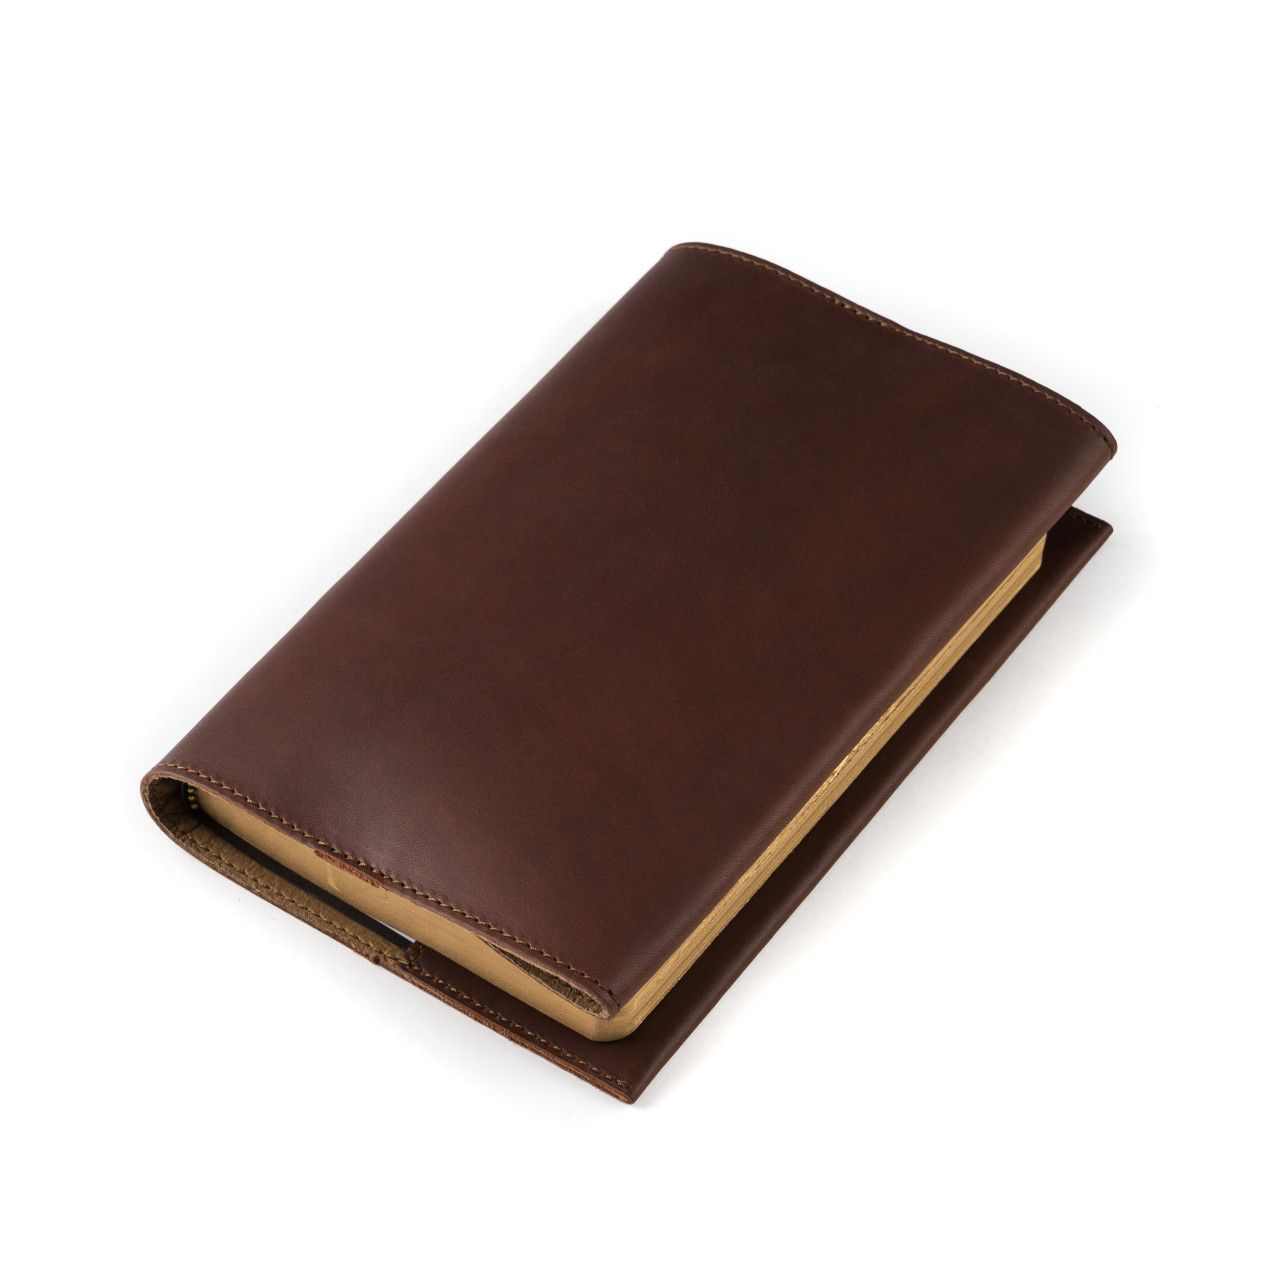 leather book cover small in chestnut leather